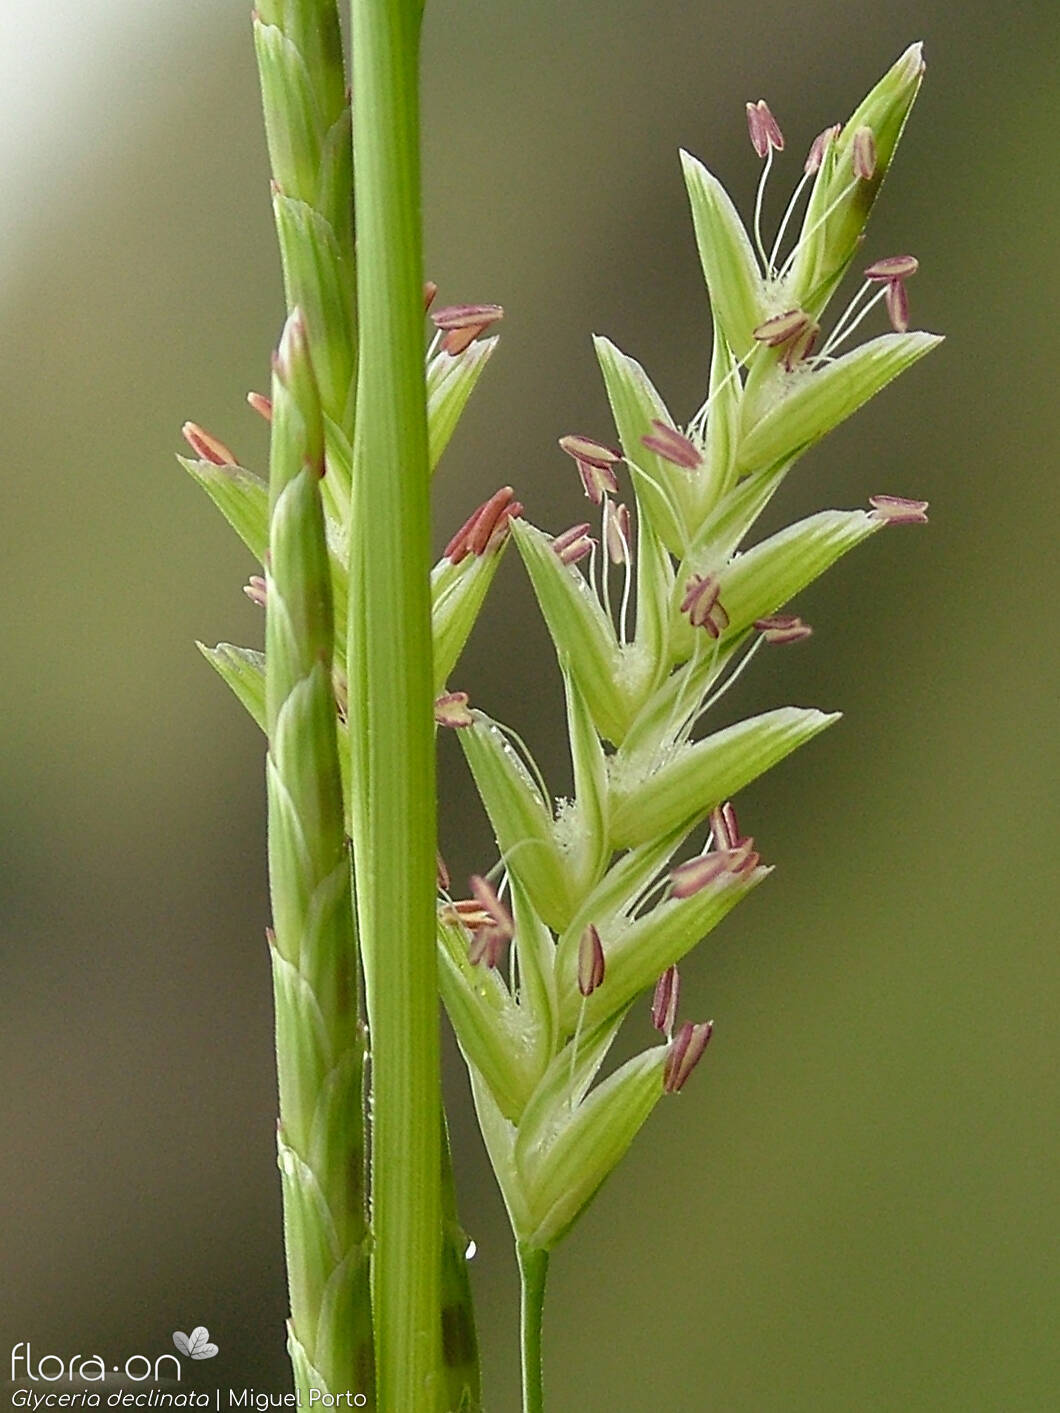 Glyceria declinata - Flor (close-up) | Miguel Porto; CC BY-NC 4.0